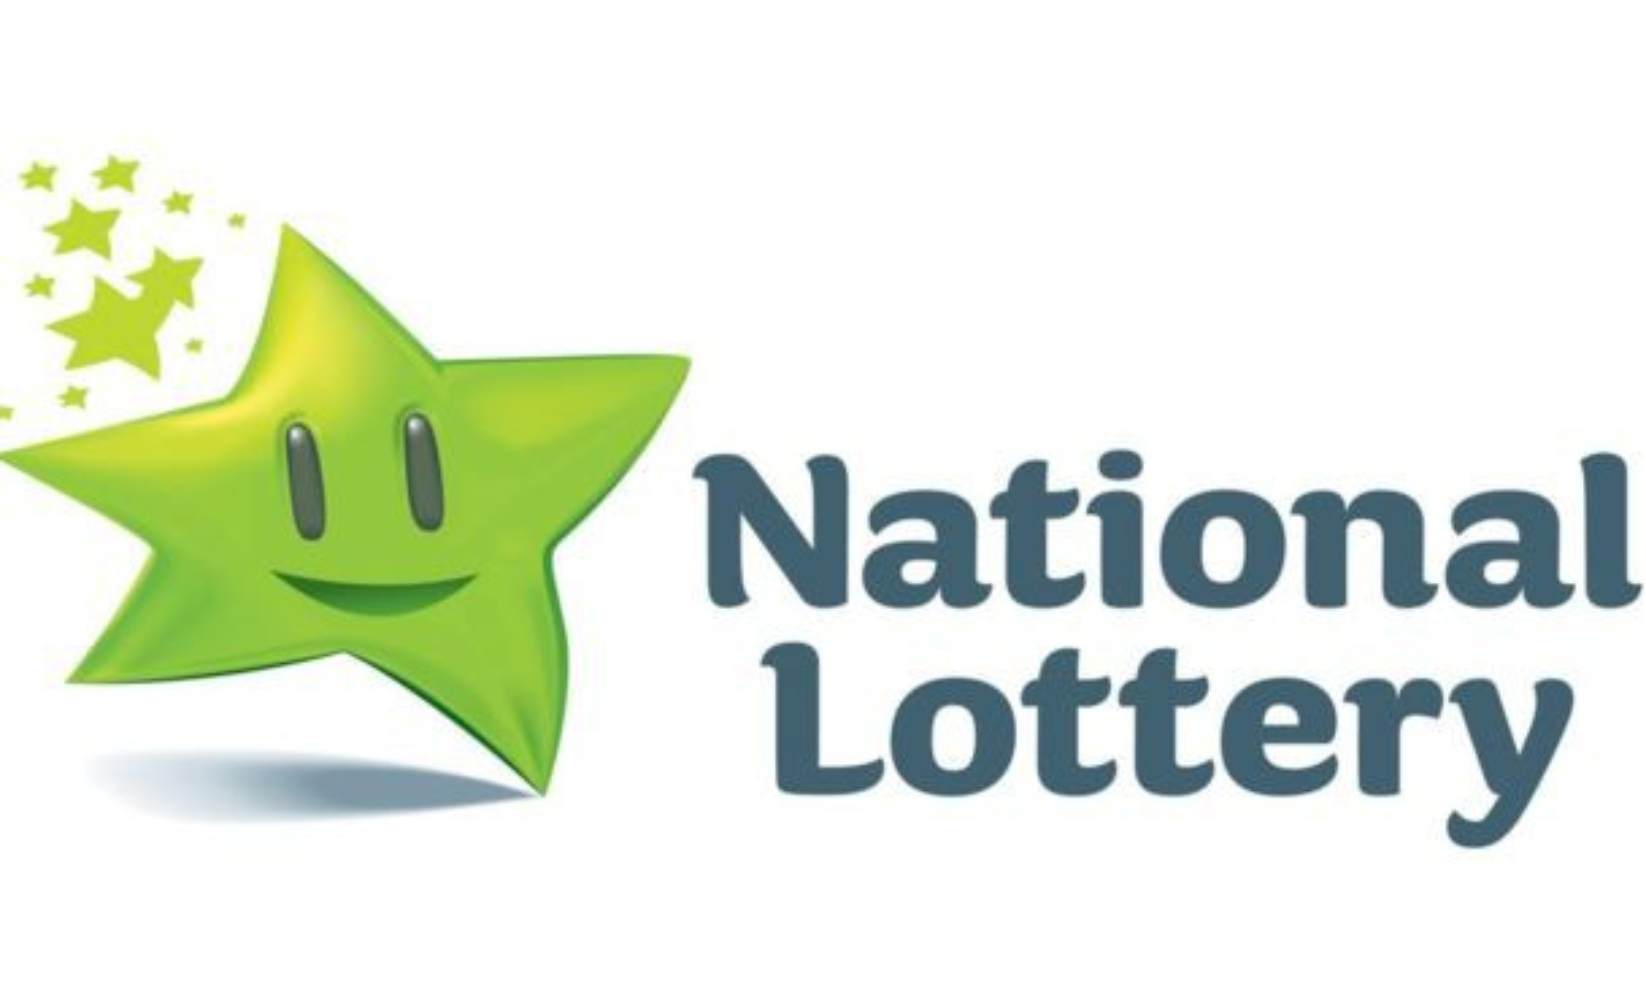 The results of the Irish lottery were revealed for a jackpot of 6.4 million euros on Saturday, January 18 – The Irish Sun